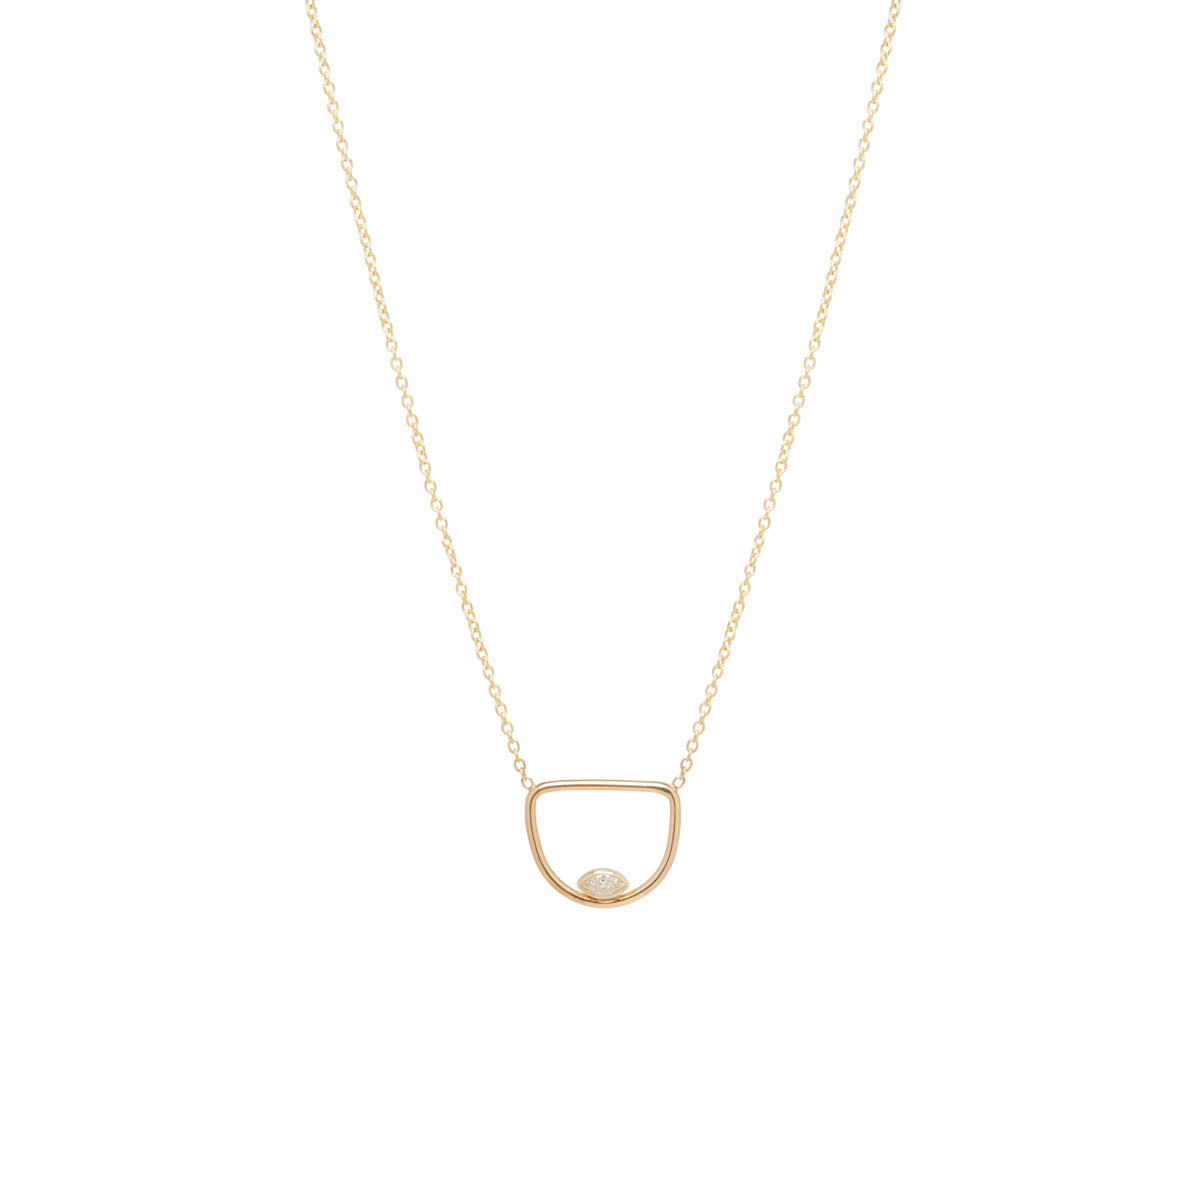 Zoë Chicco 14kt Yellow Gold Floating Marquis Diamond Open Horizon Necklace